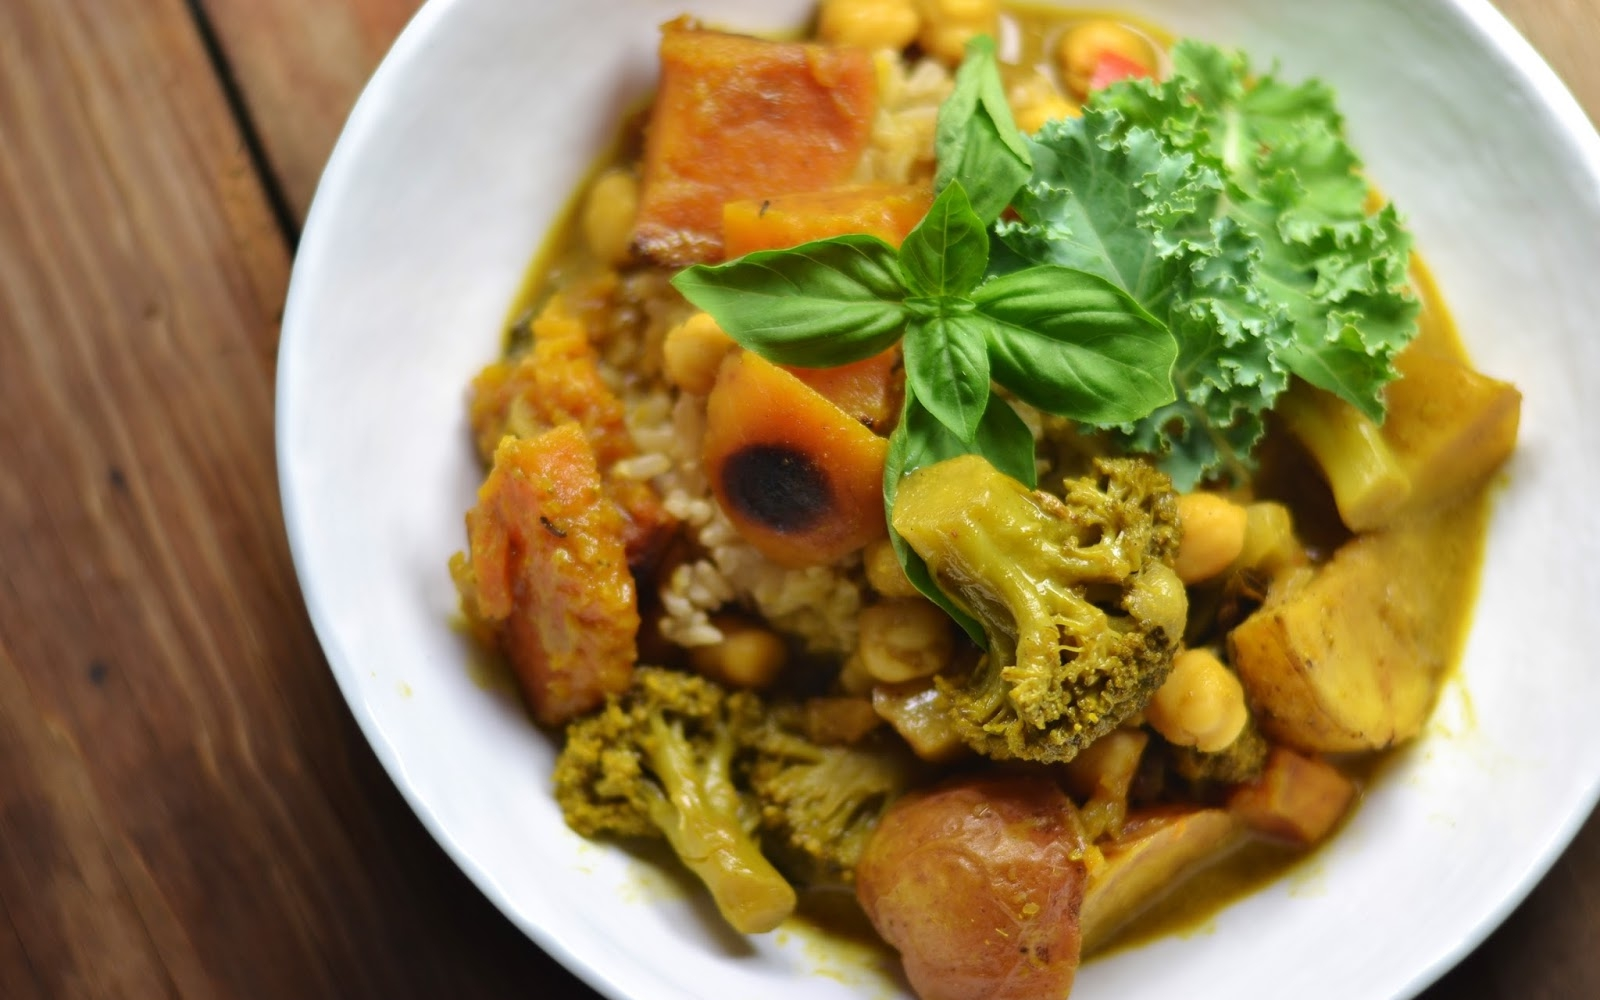 Fennel-Roasted Potato and Butternut Squash Green Curry With Brown Rice